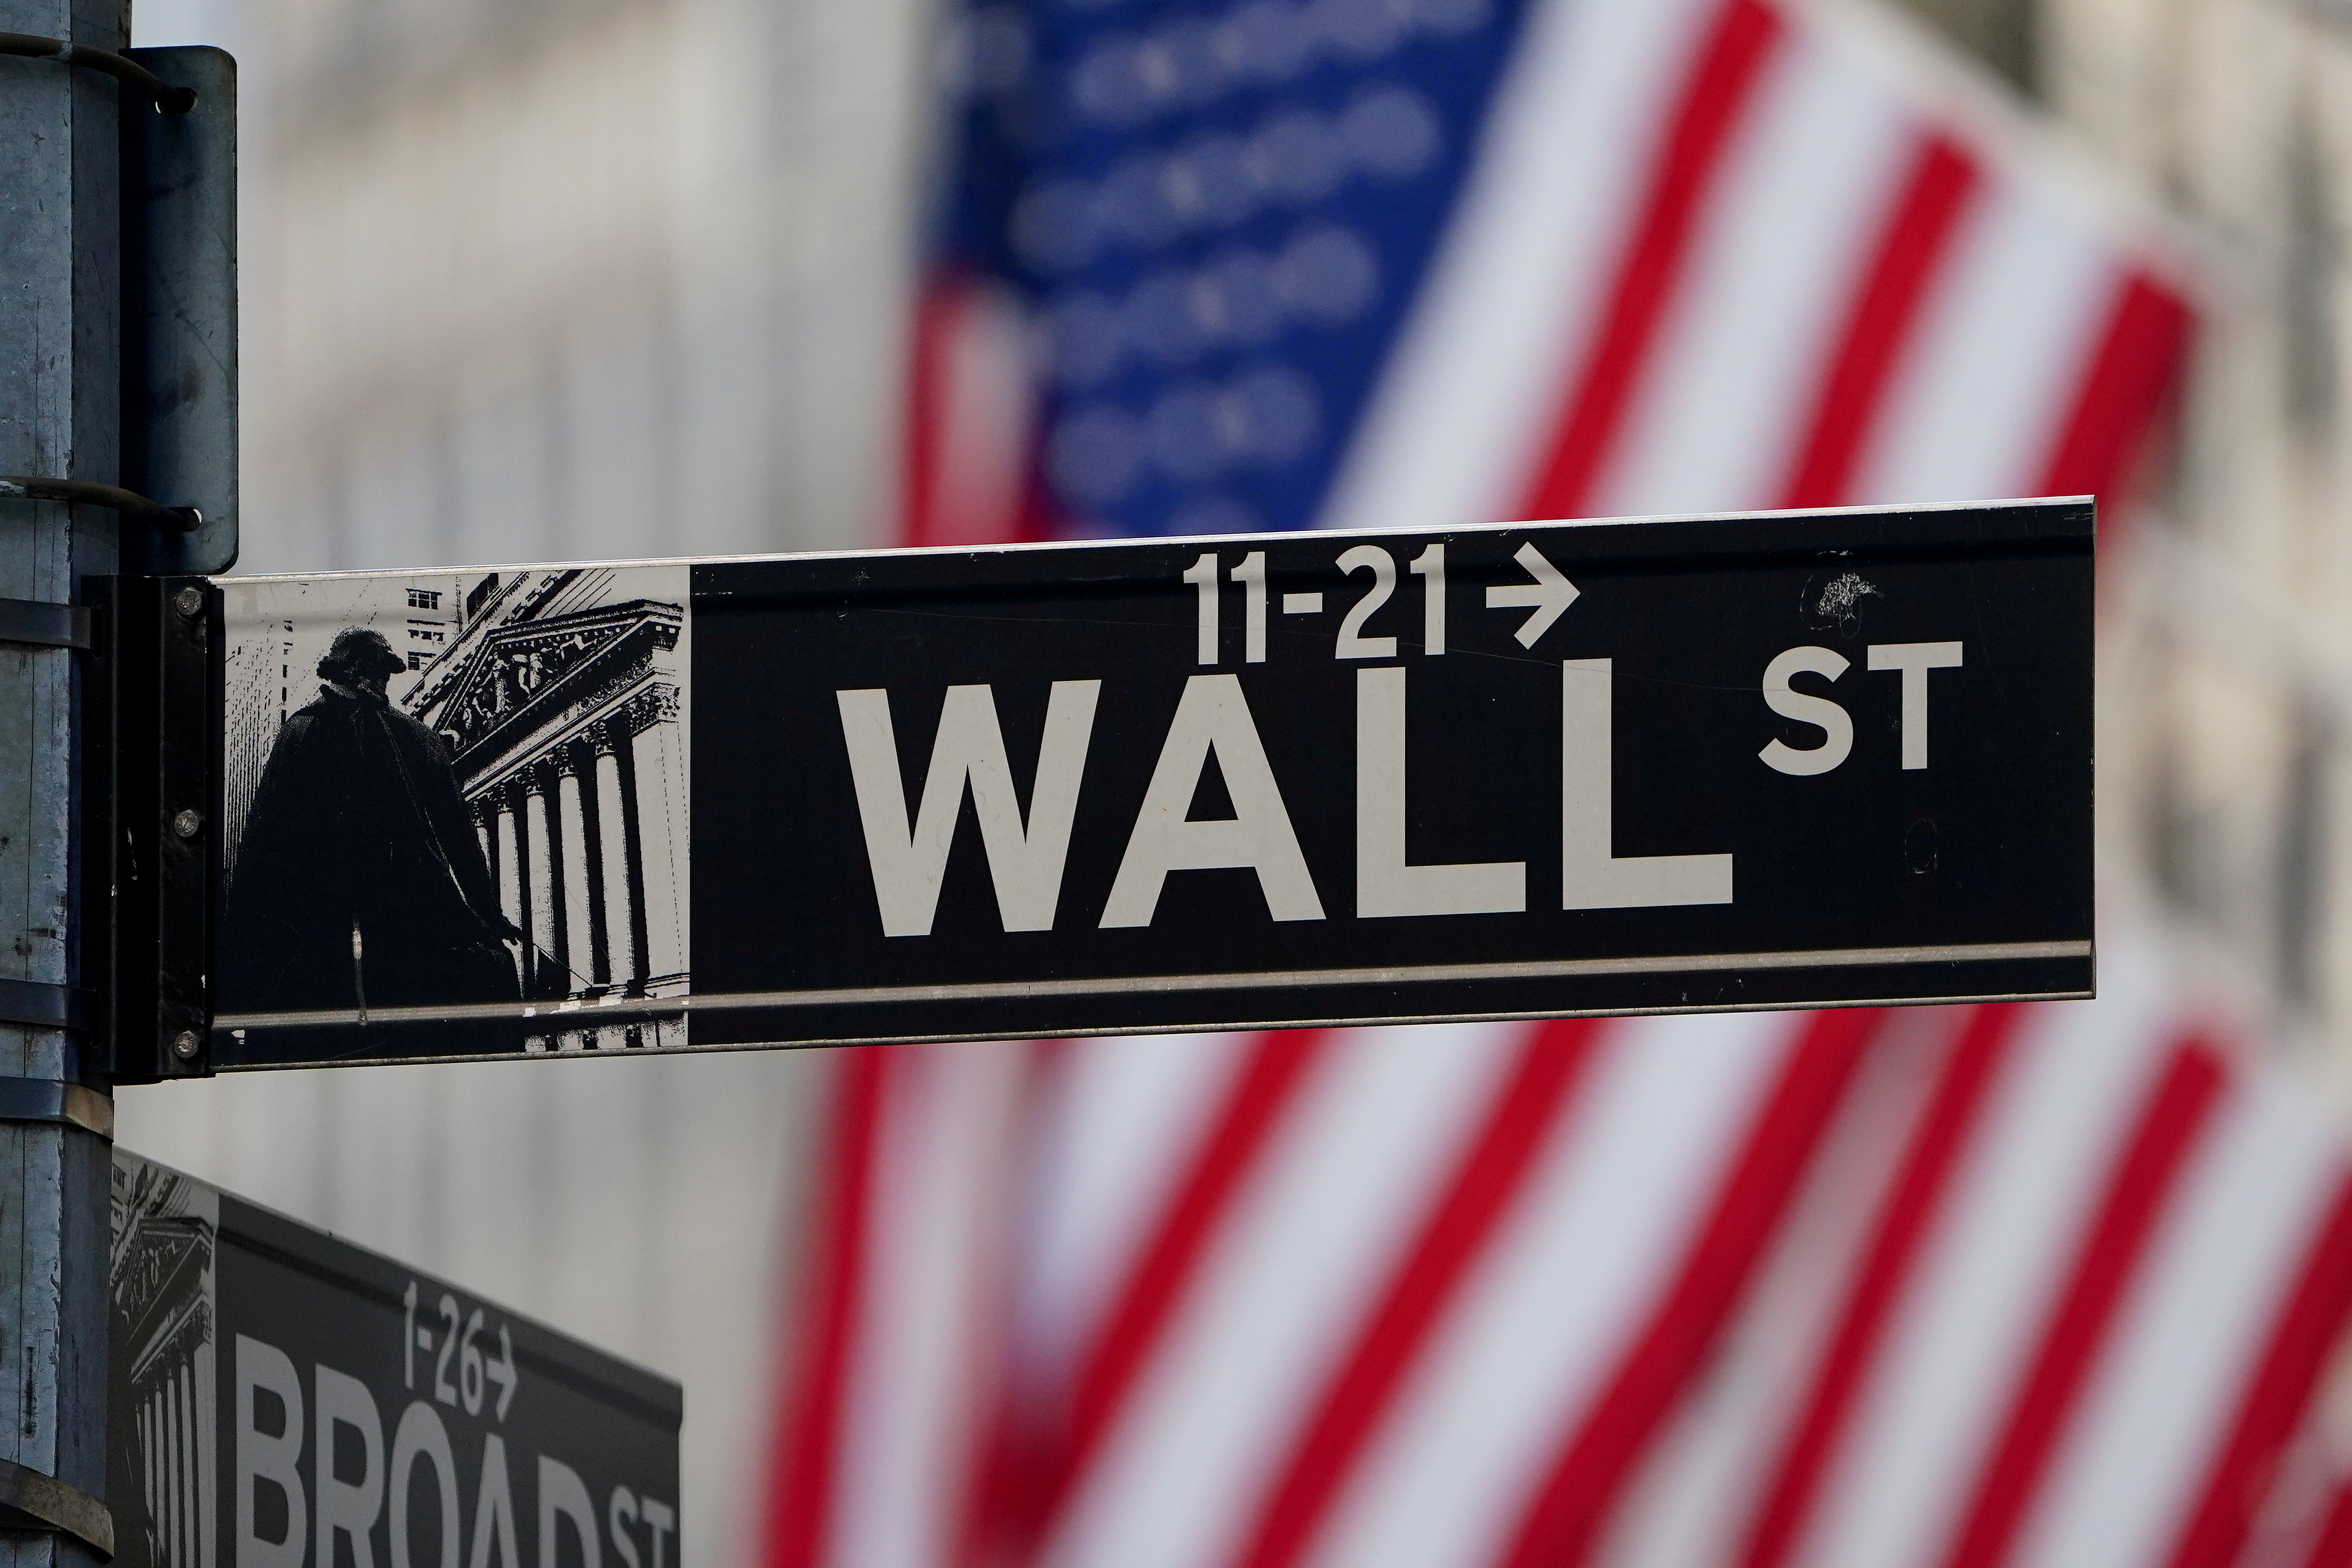 The Wall Street sign is pictured at the New York Stock exchange (NYSE) in the Manhattan borough of New York City, New York, U.S., March 9, 2020. REUTERS/Carlo Allegri/File Photo